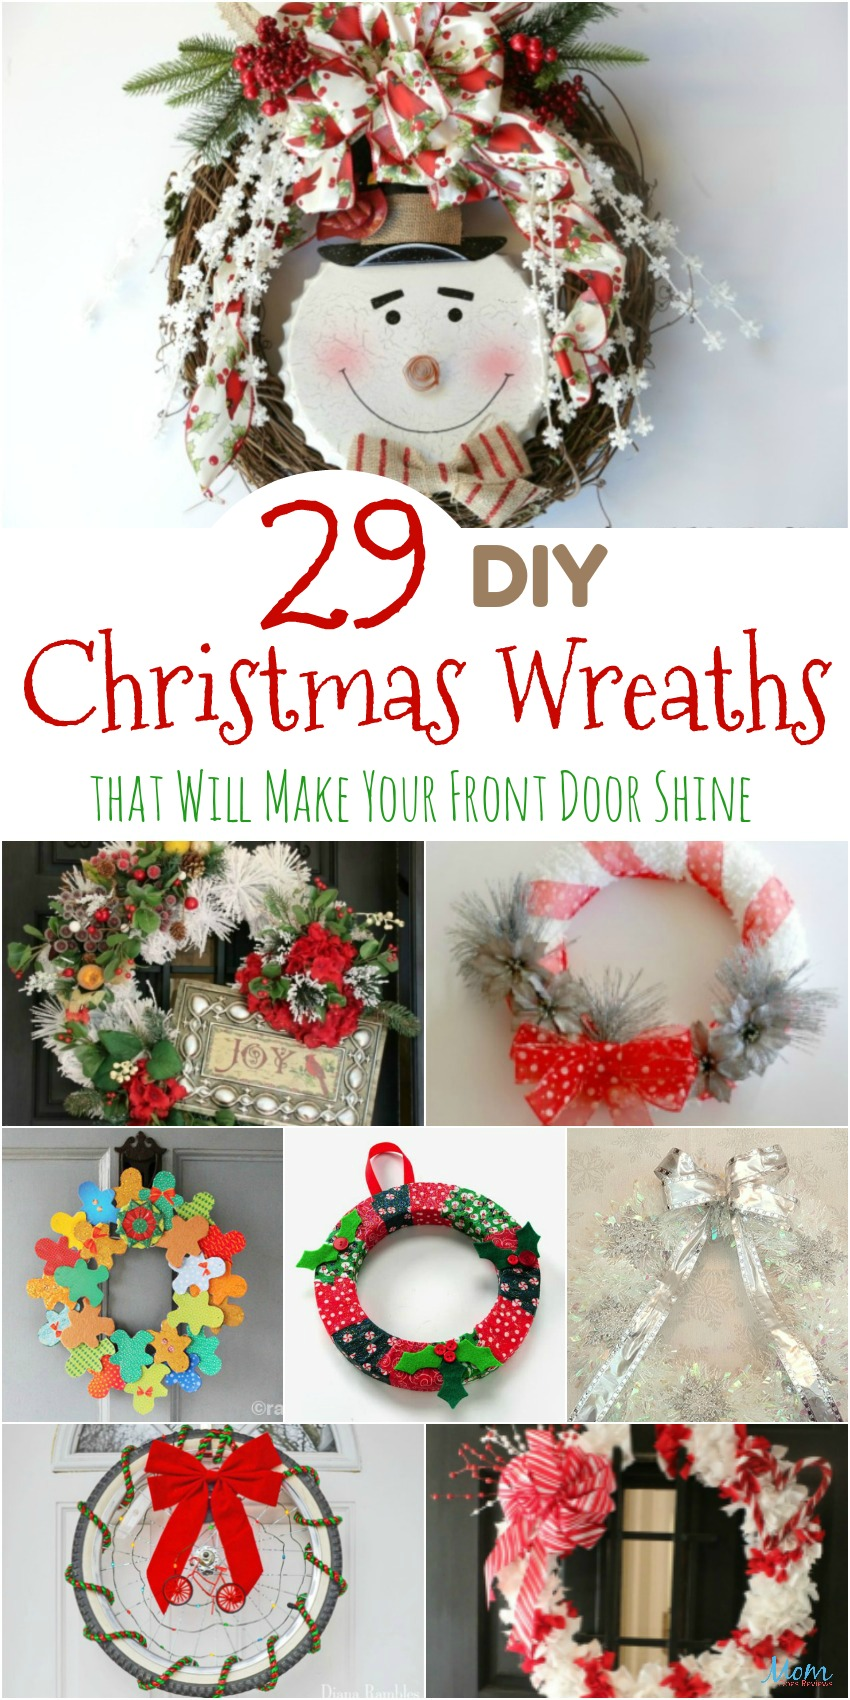 29 DIY Christmas Wreaths that Will Make Your Front Door Shine